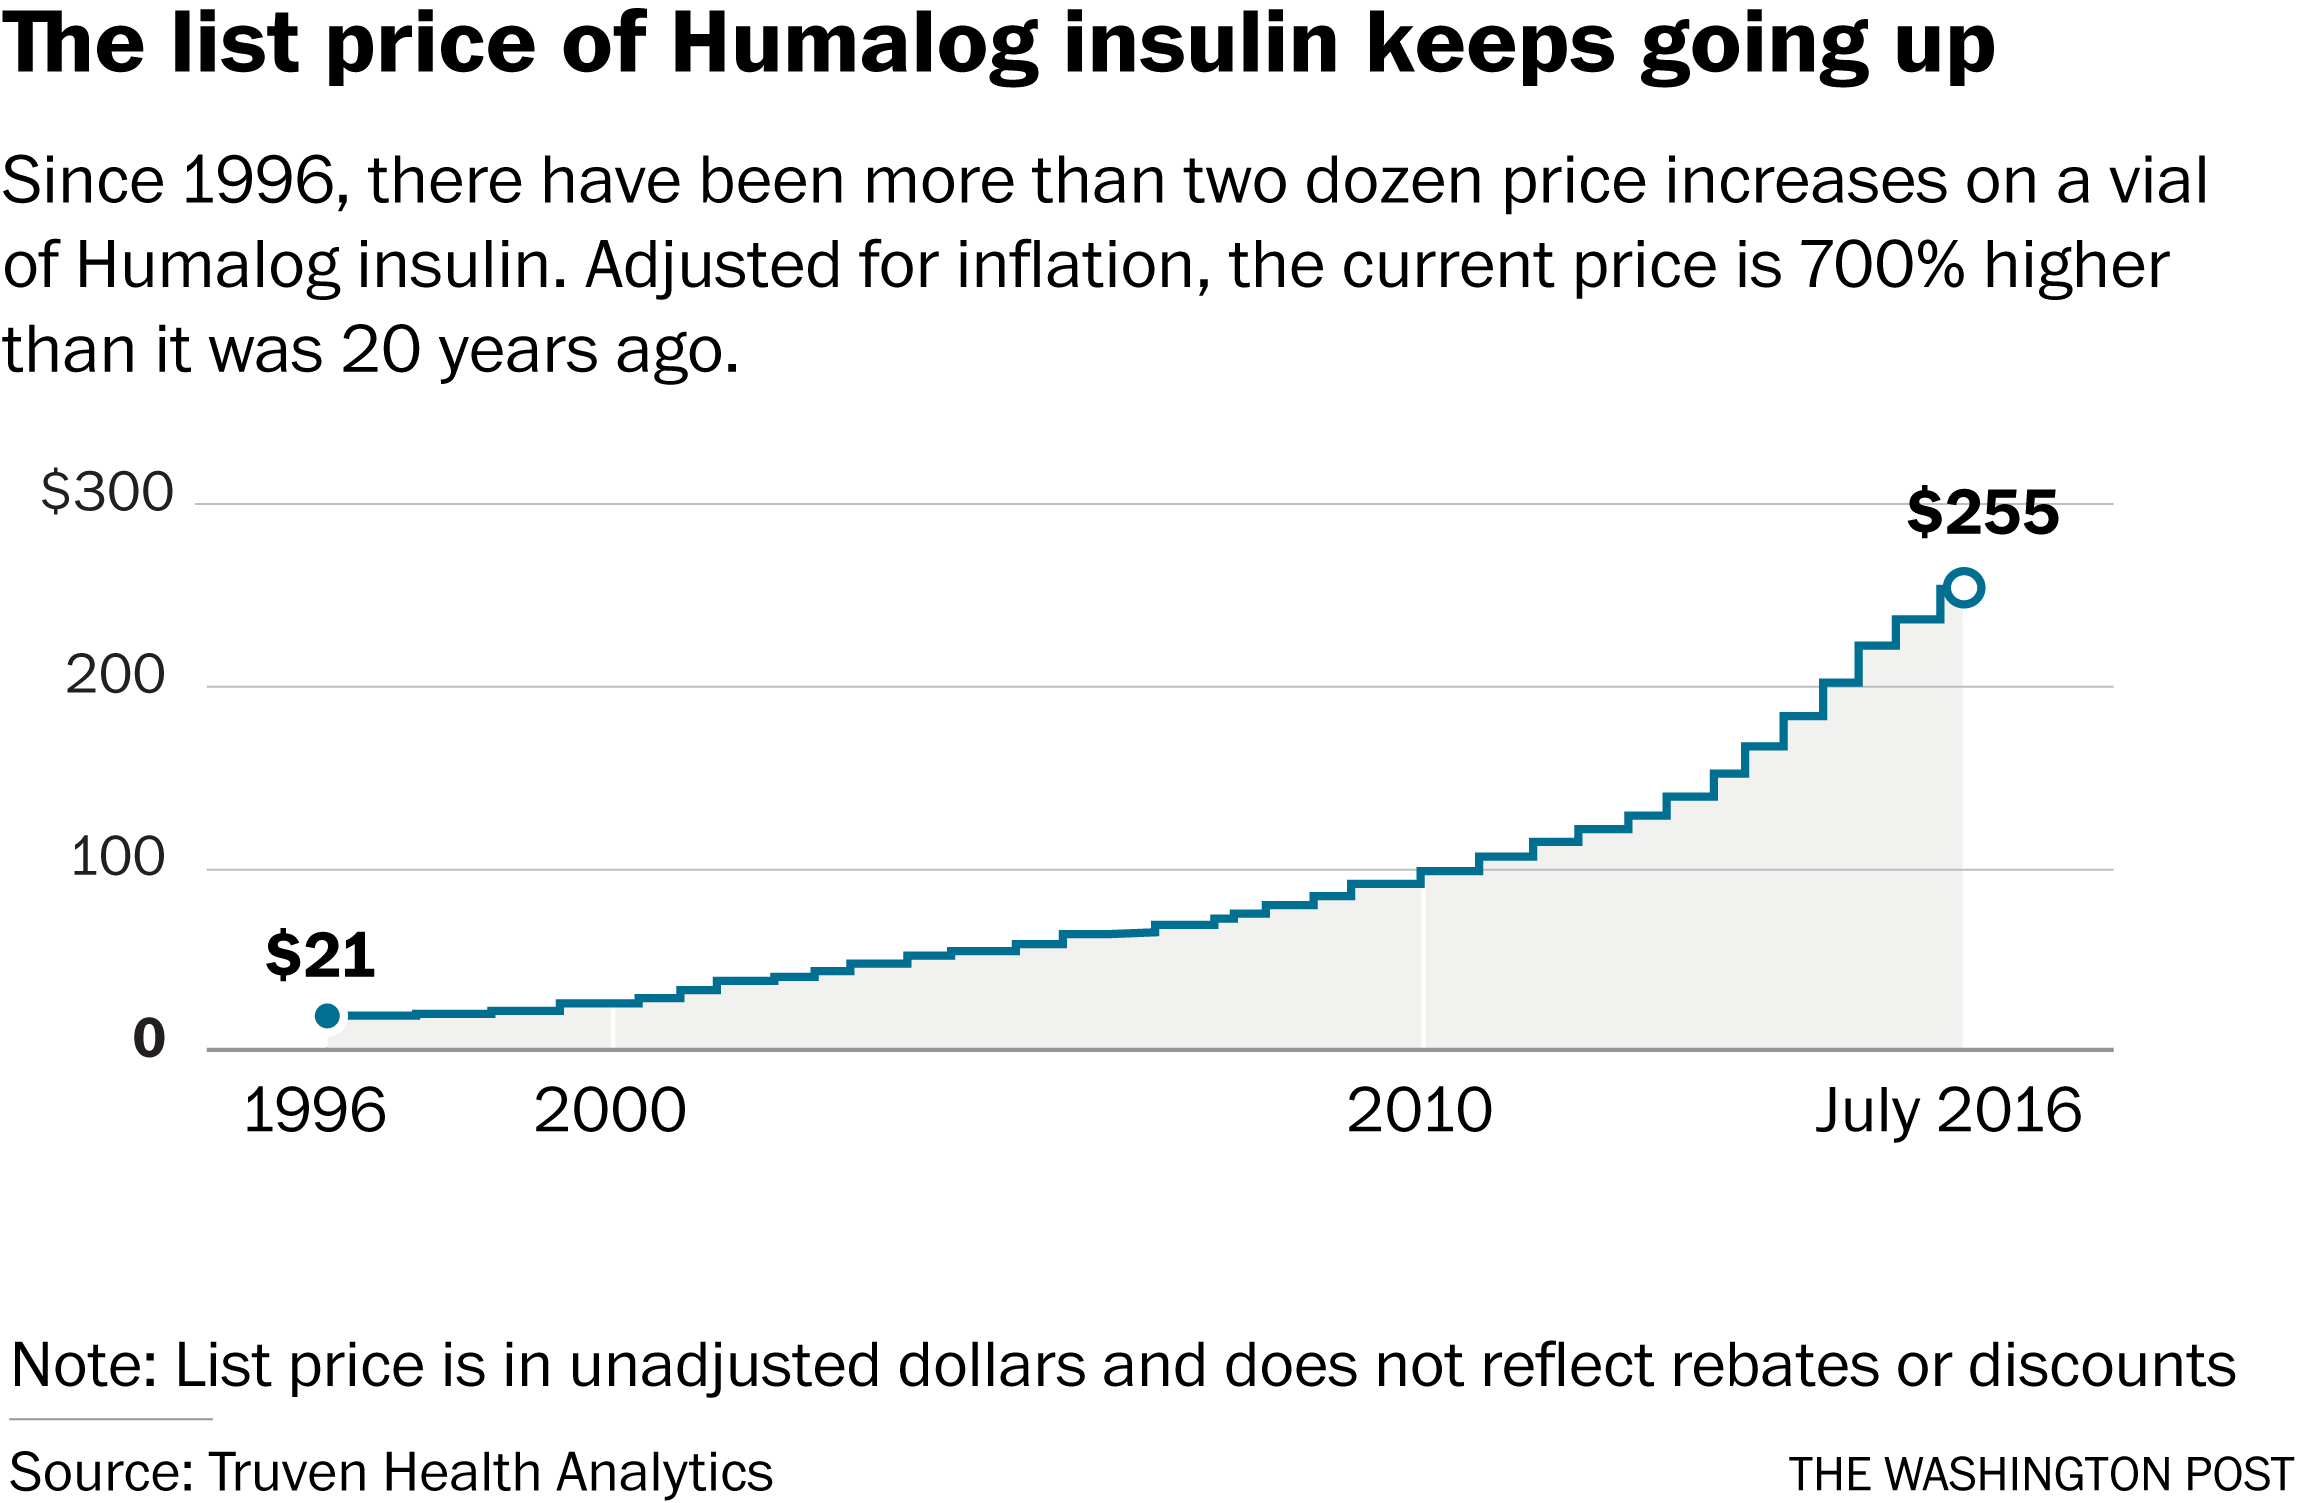 2300-insulin-price-changes-unadjusted